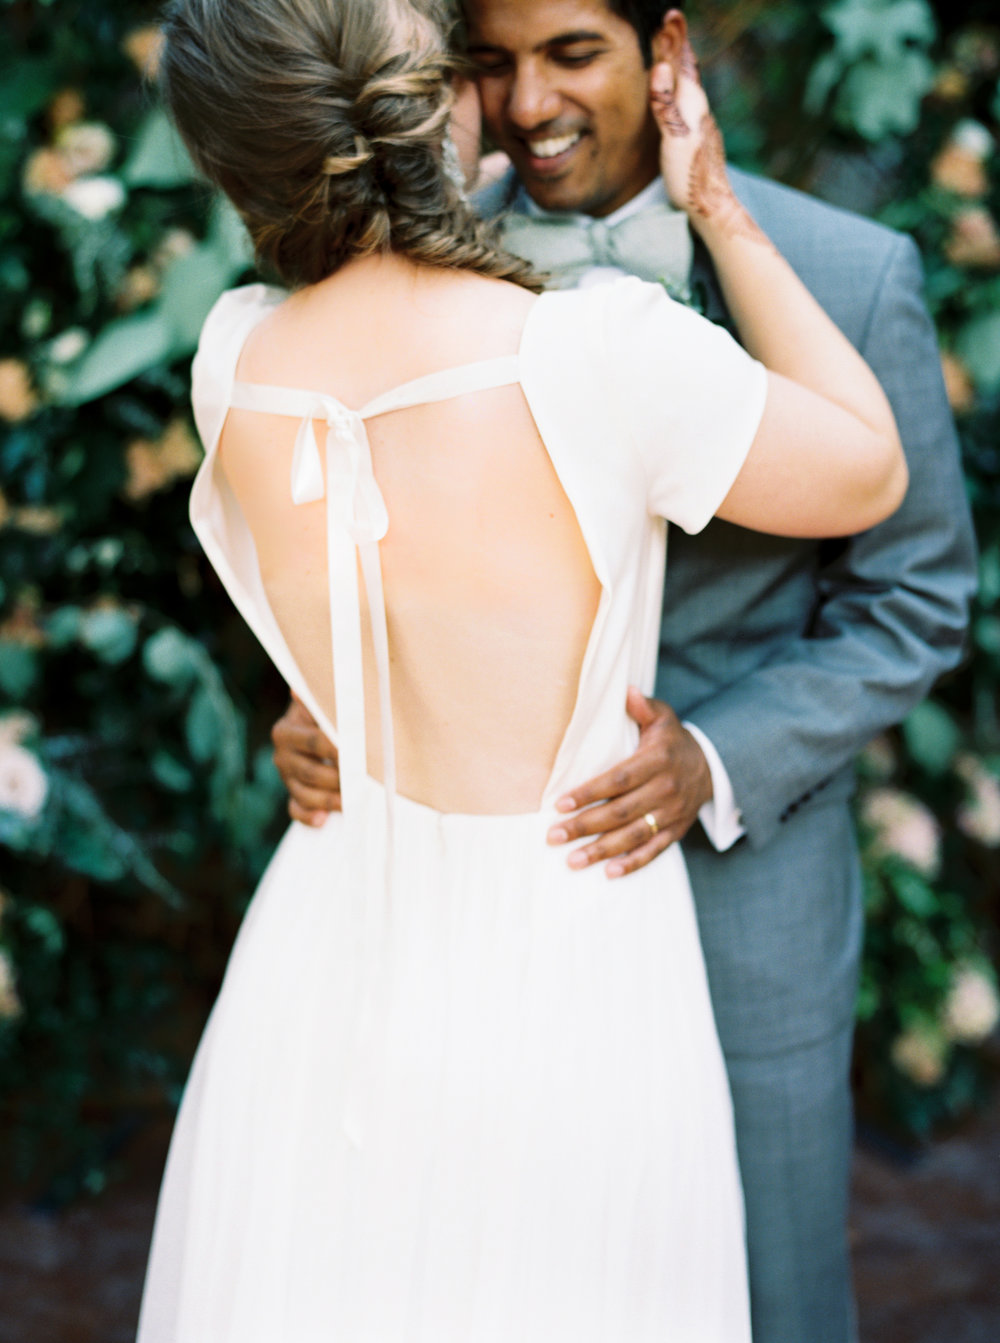 Wahoo_Grill_Atlanta_Indian_Wedding_Abigail_Malone_Photgoraphy_FIlm-109.jpg